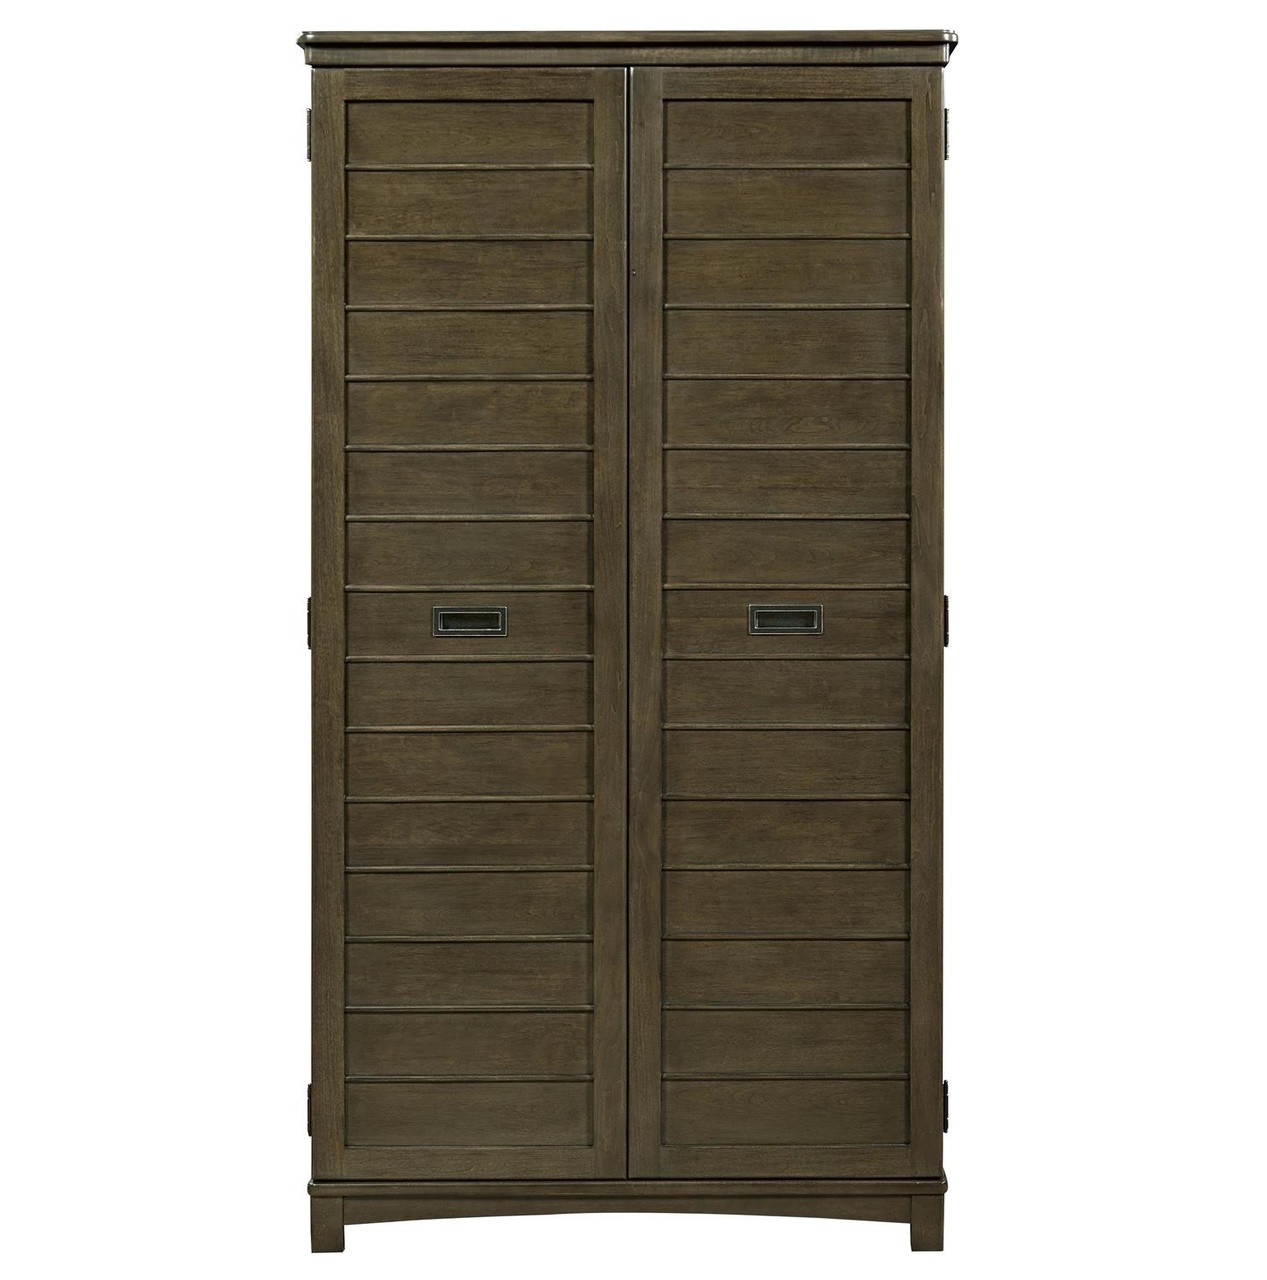 Soho Kids Bedroom Wardrobe Armoire